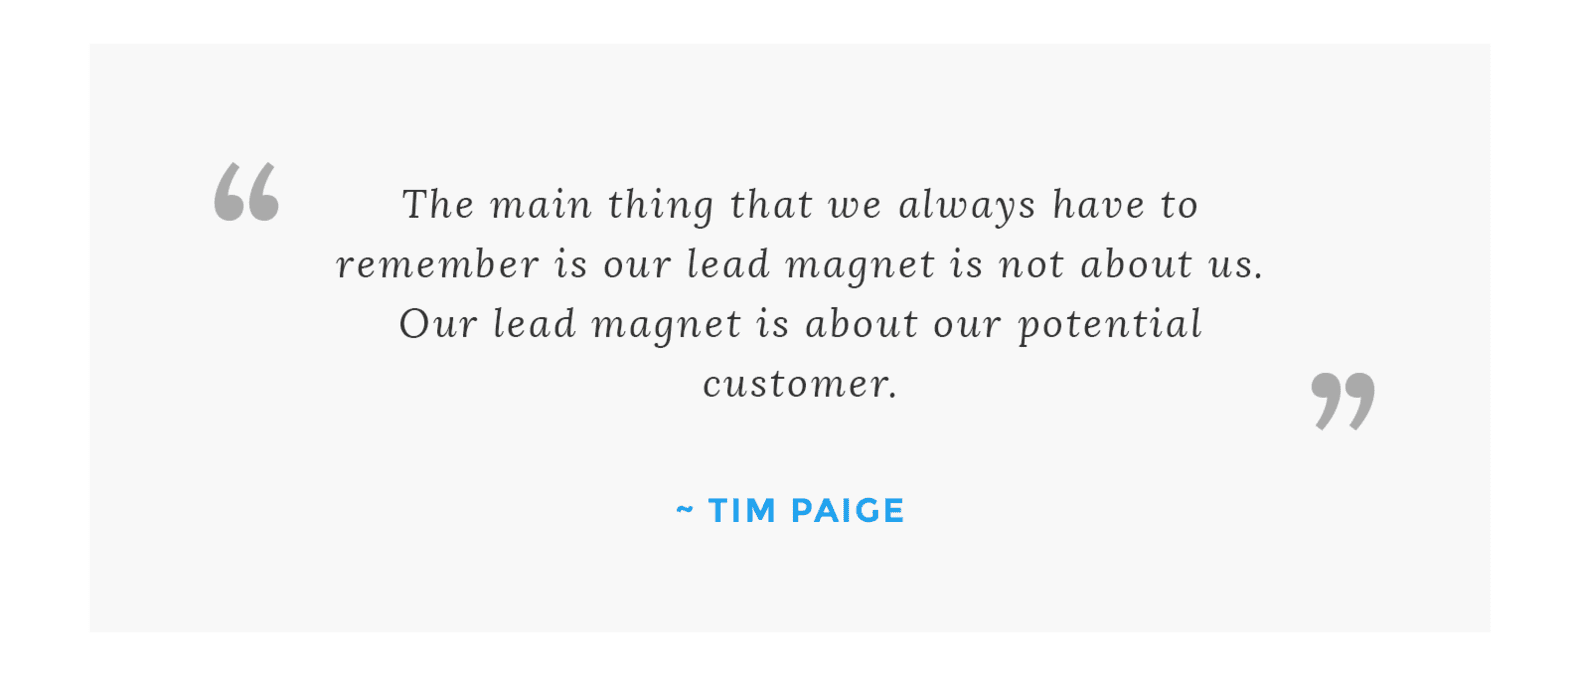 """The main thing that we always have to remember is our lead magnet is not about us. Our lead magnet is about our potential customer."" – Tim Paige"